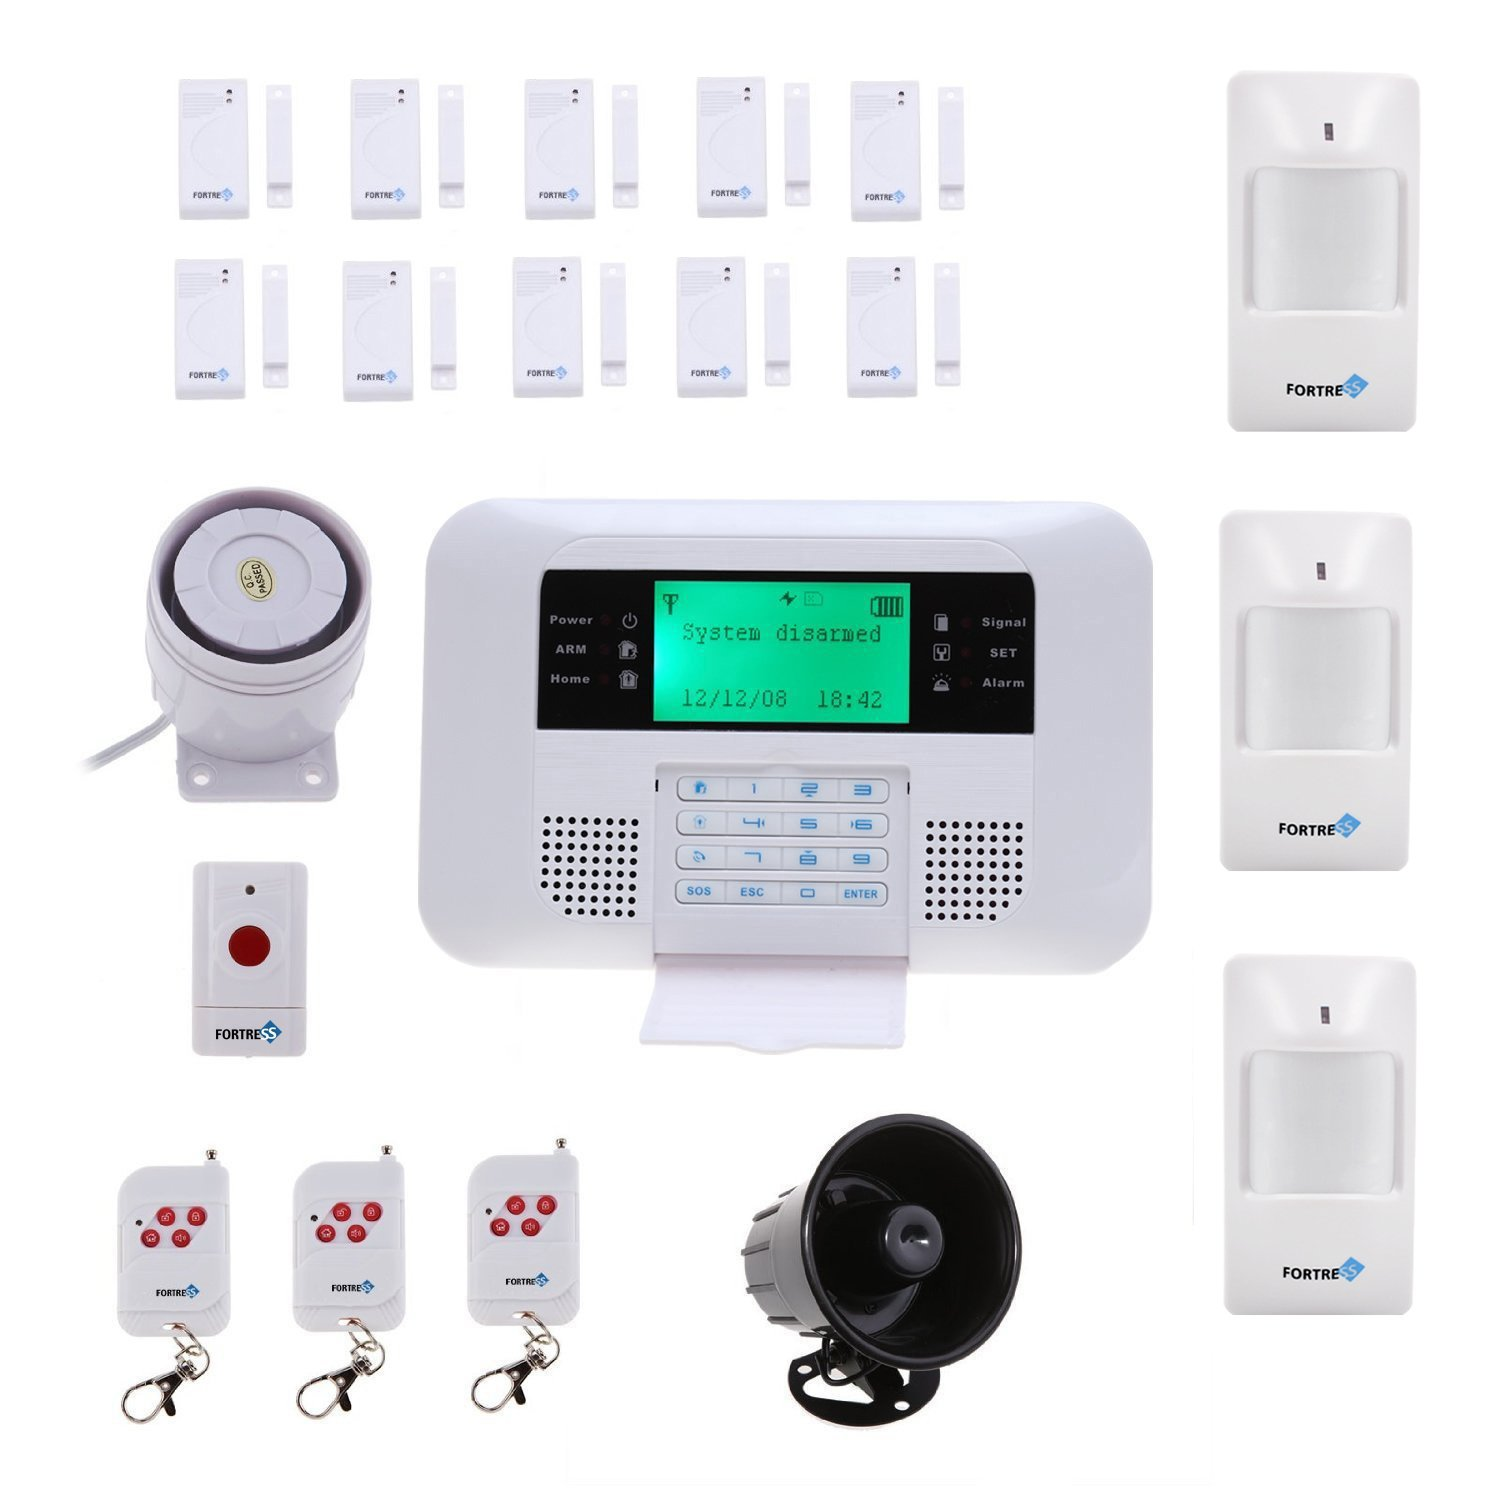 Fortress Home Security System Review